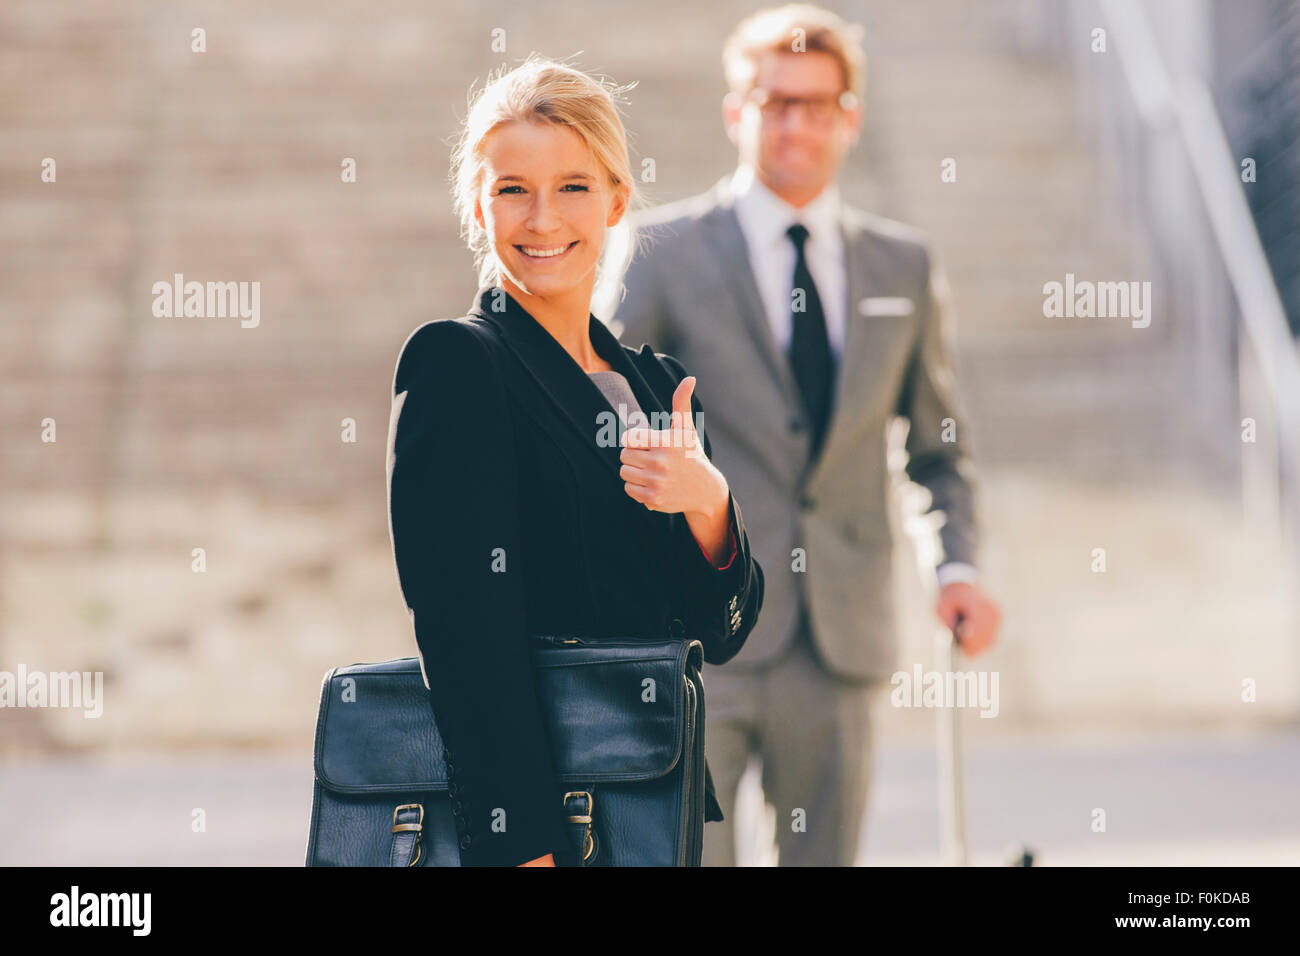 Optimistic businesswoman with businessman in background - Stock Image